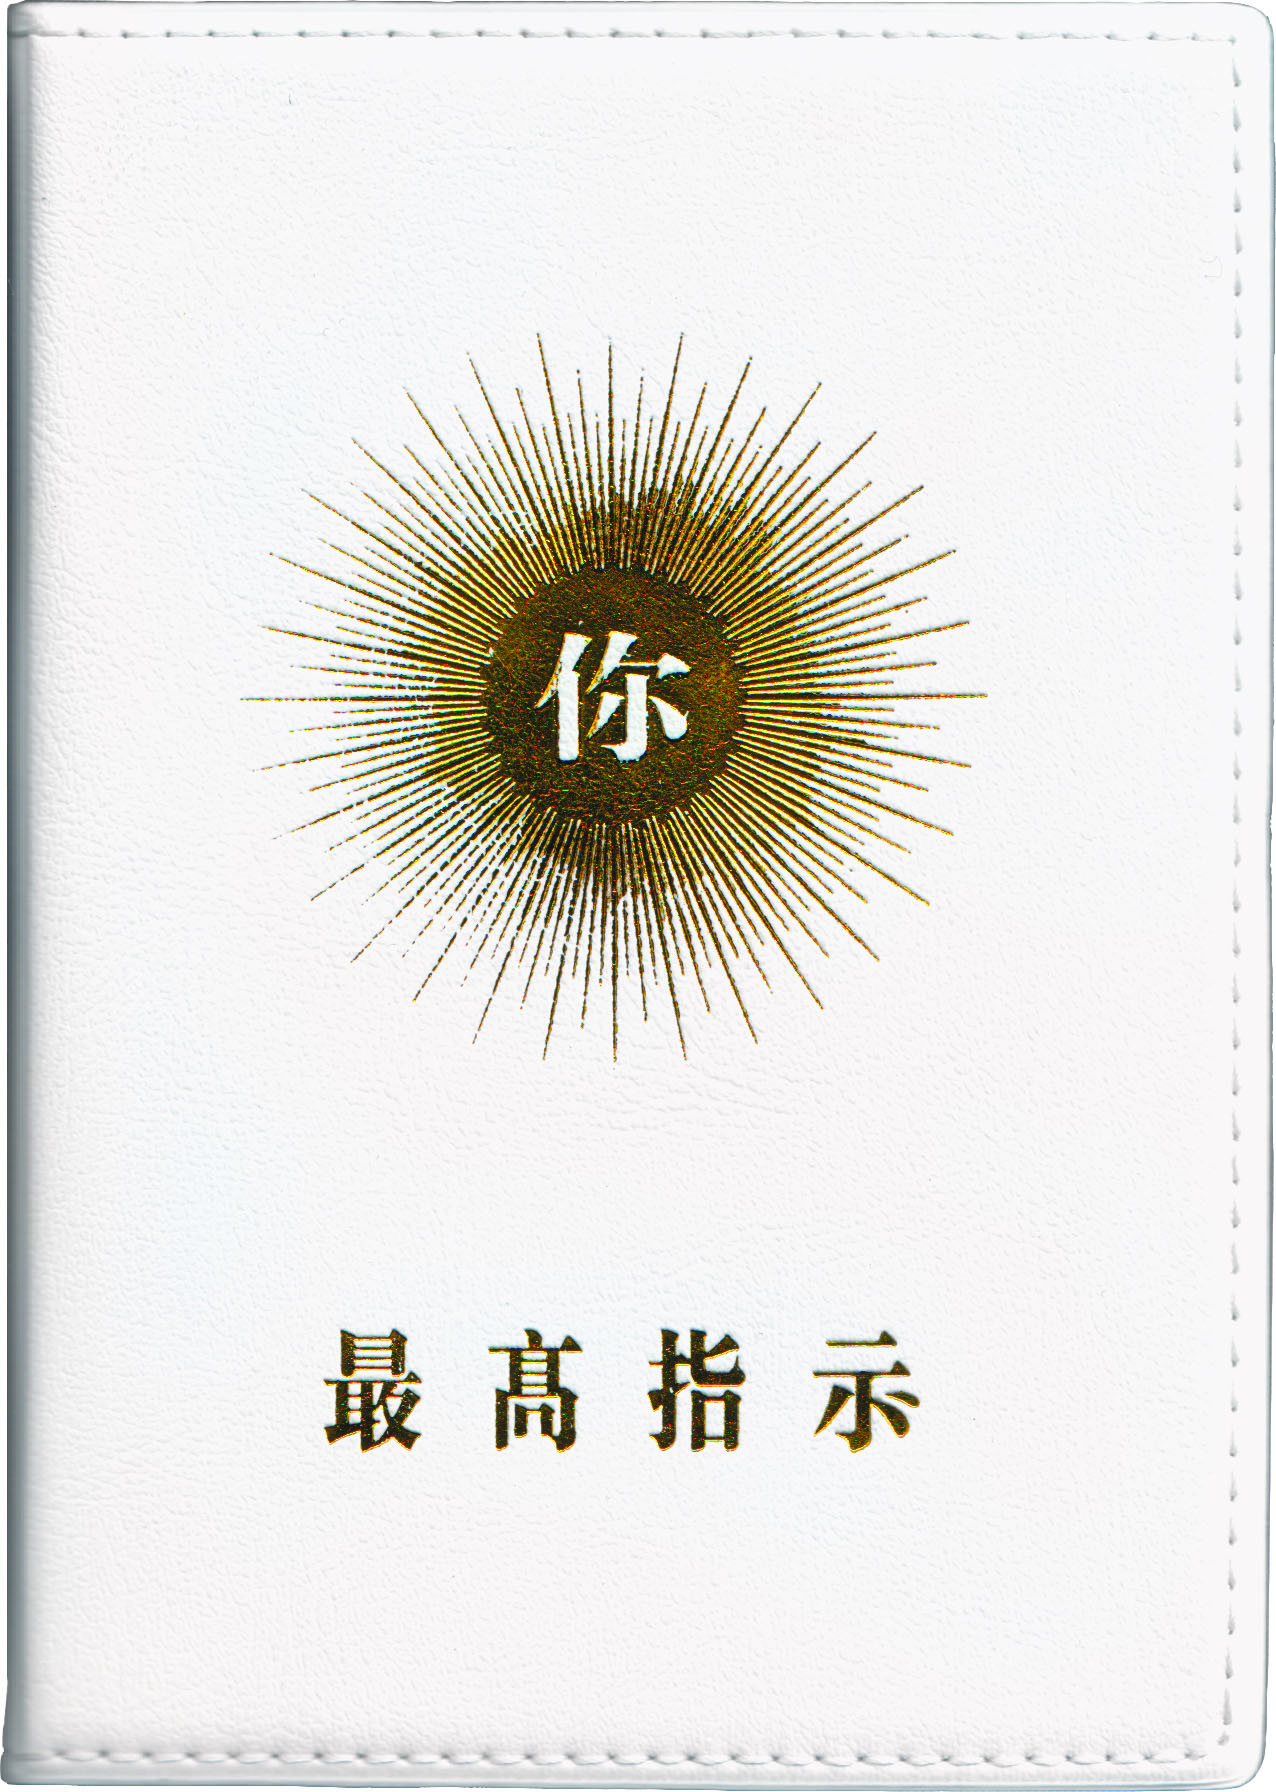 http://burb.tv/_f/o/00/40/52_white_book_cover.jpg